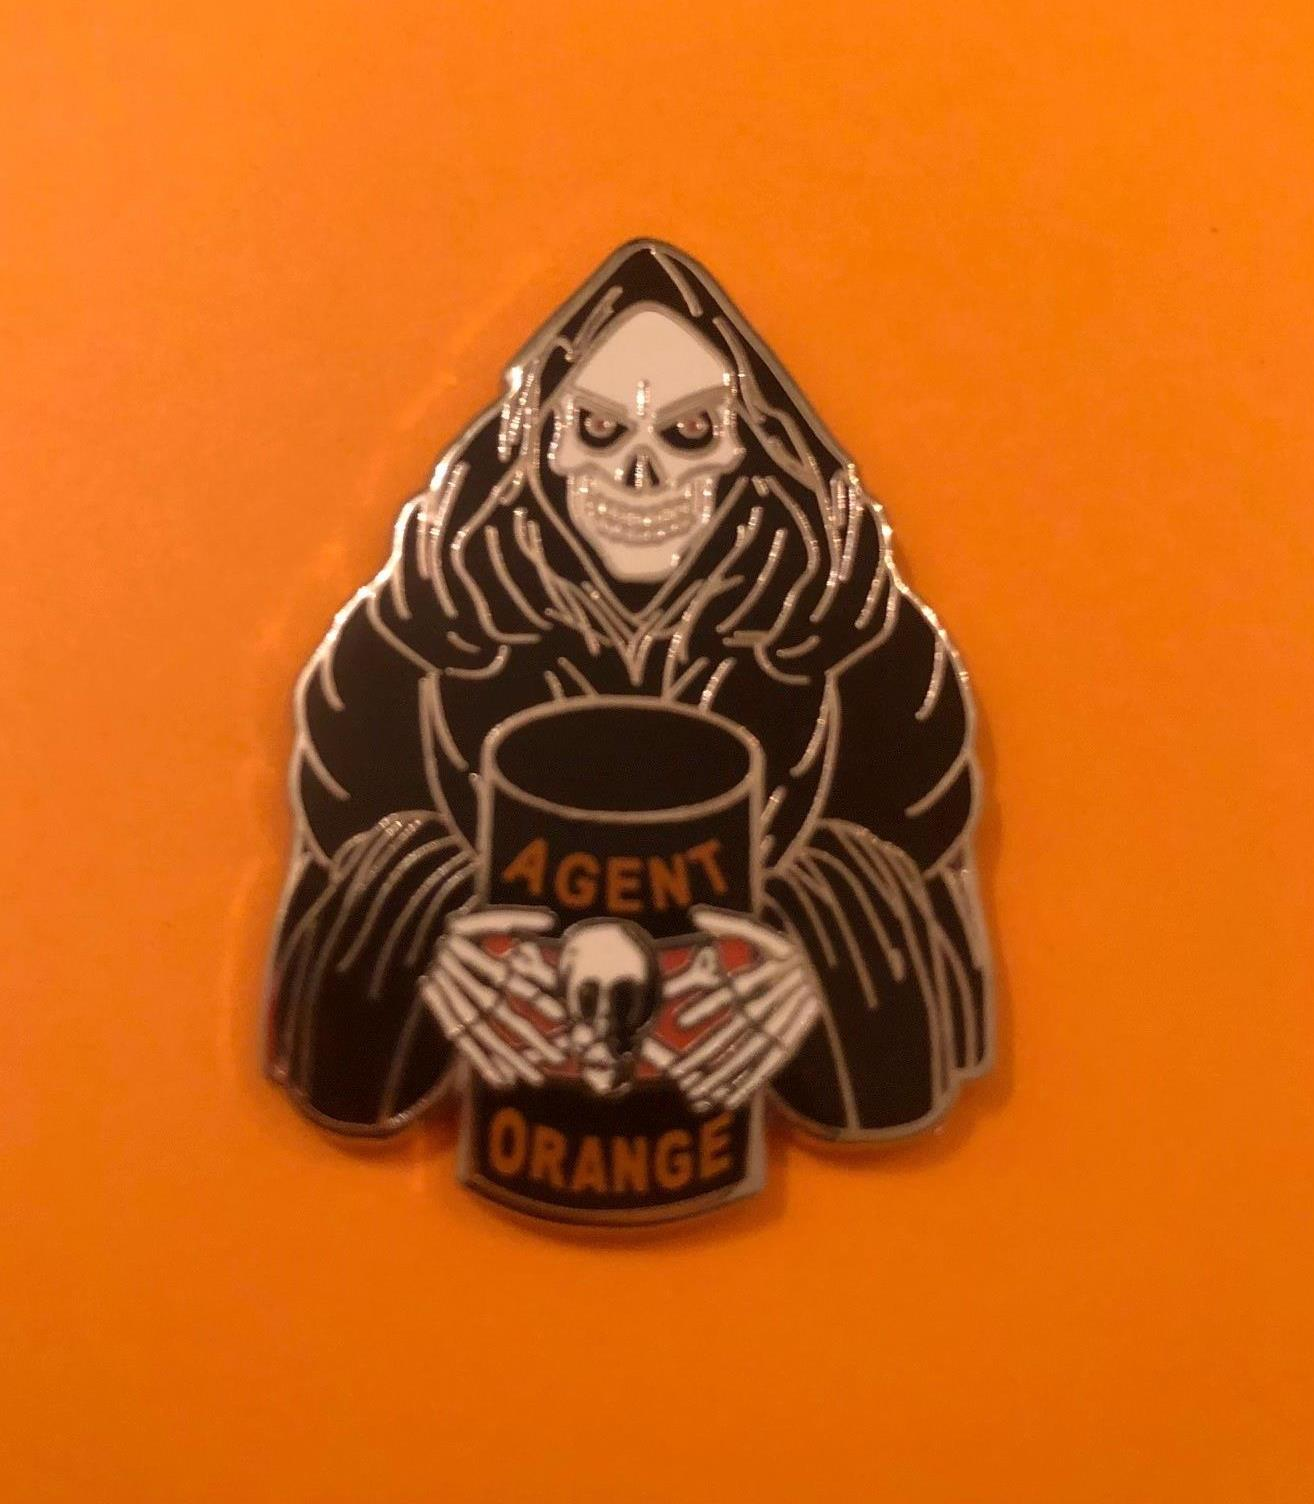 AGENT ORANGE GRIM REAPER PIN